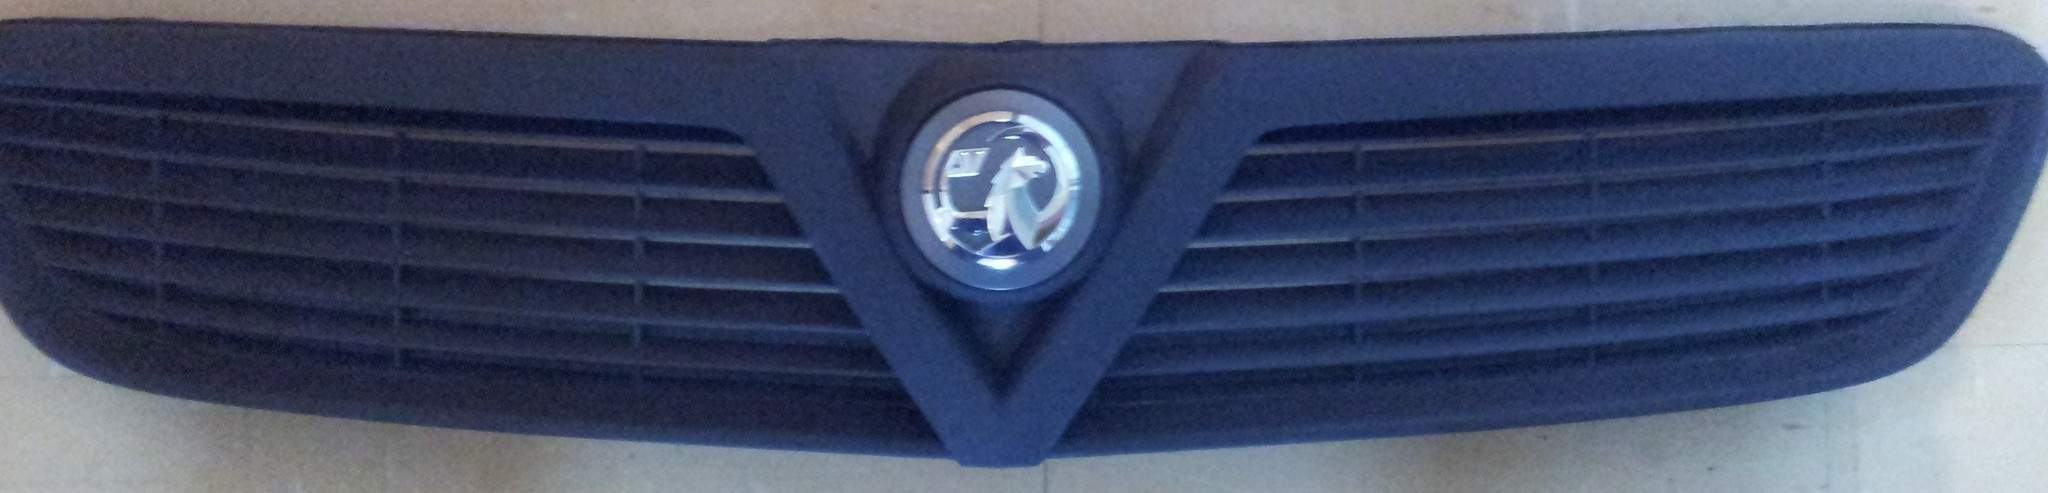 grill with badge.jpg